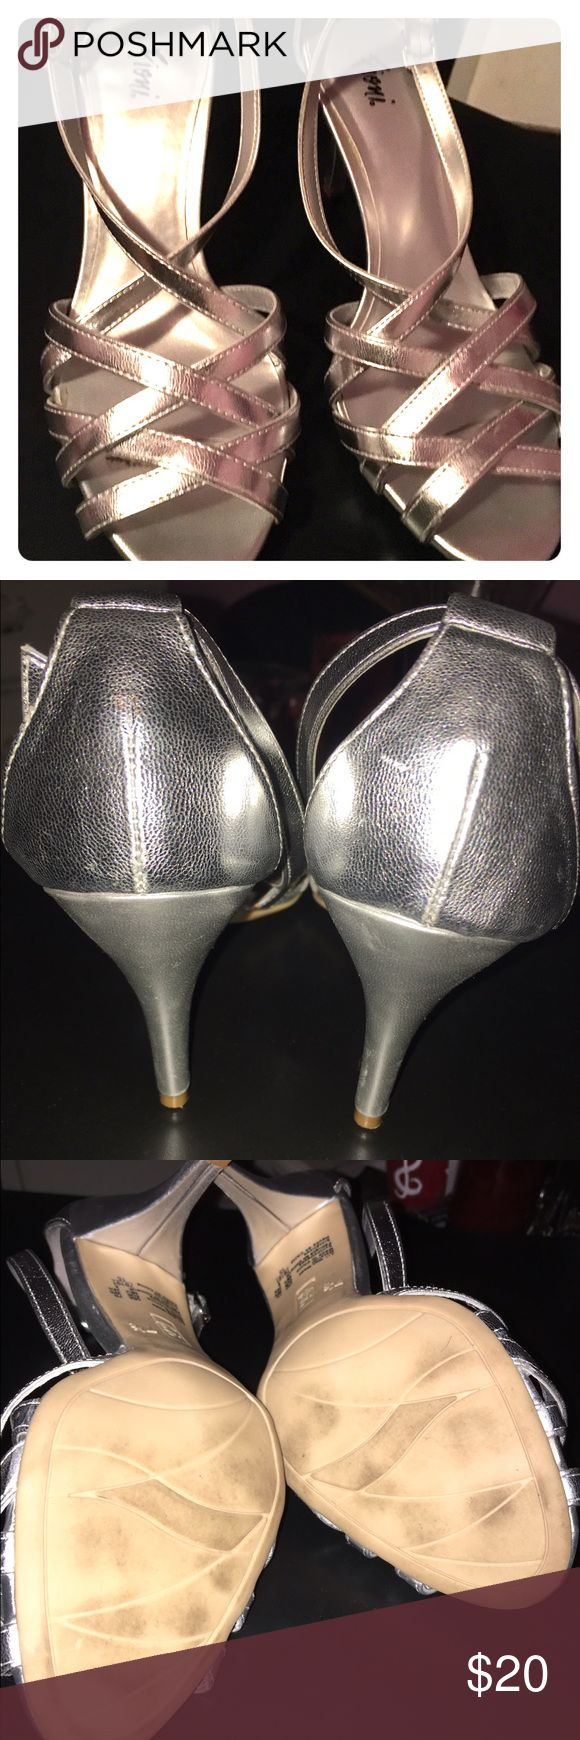 Silver strappy sandals Beautiful silver heels. Great for dressing up jeans or a formal attire Shoes Heels